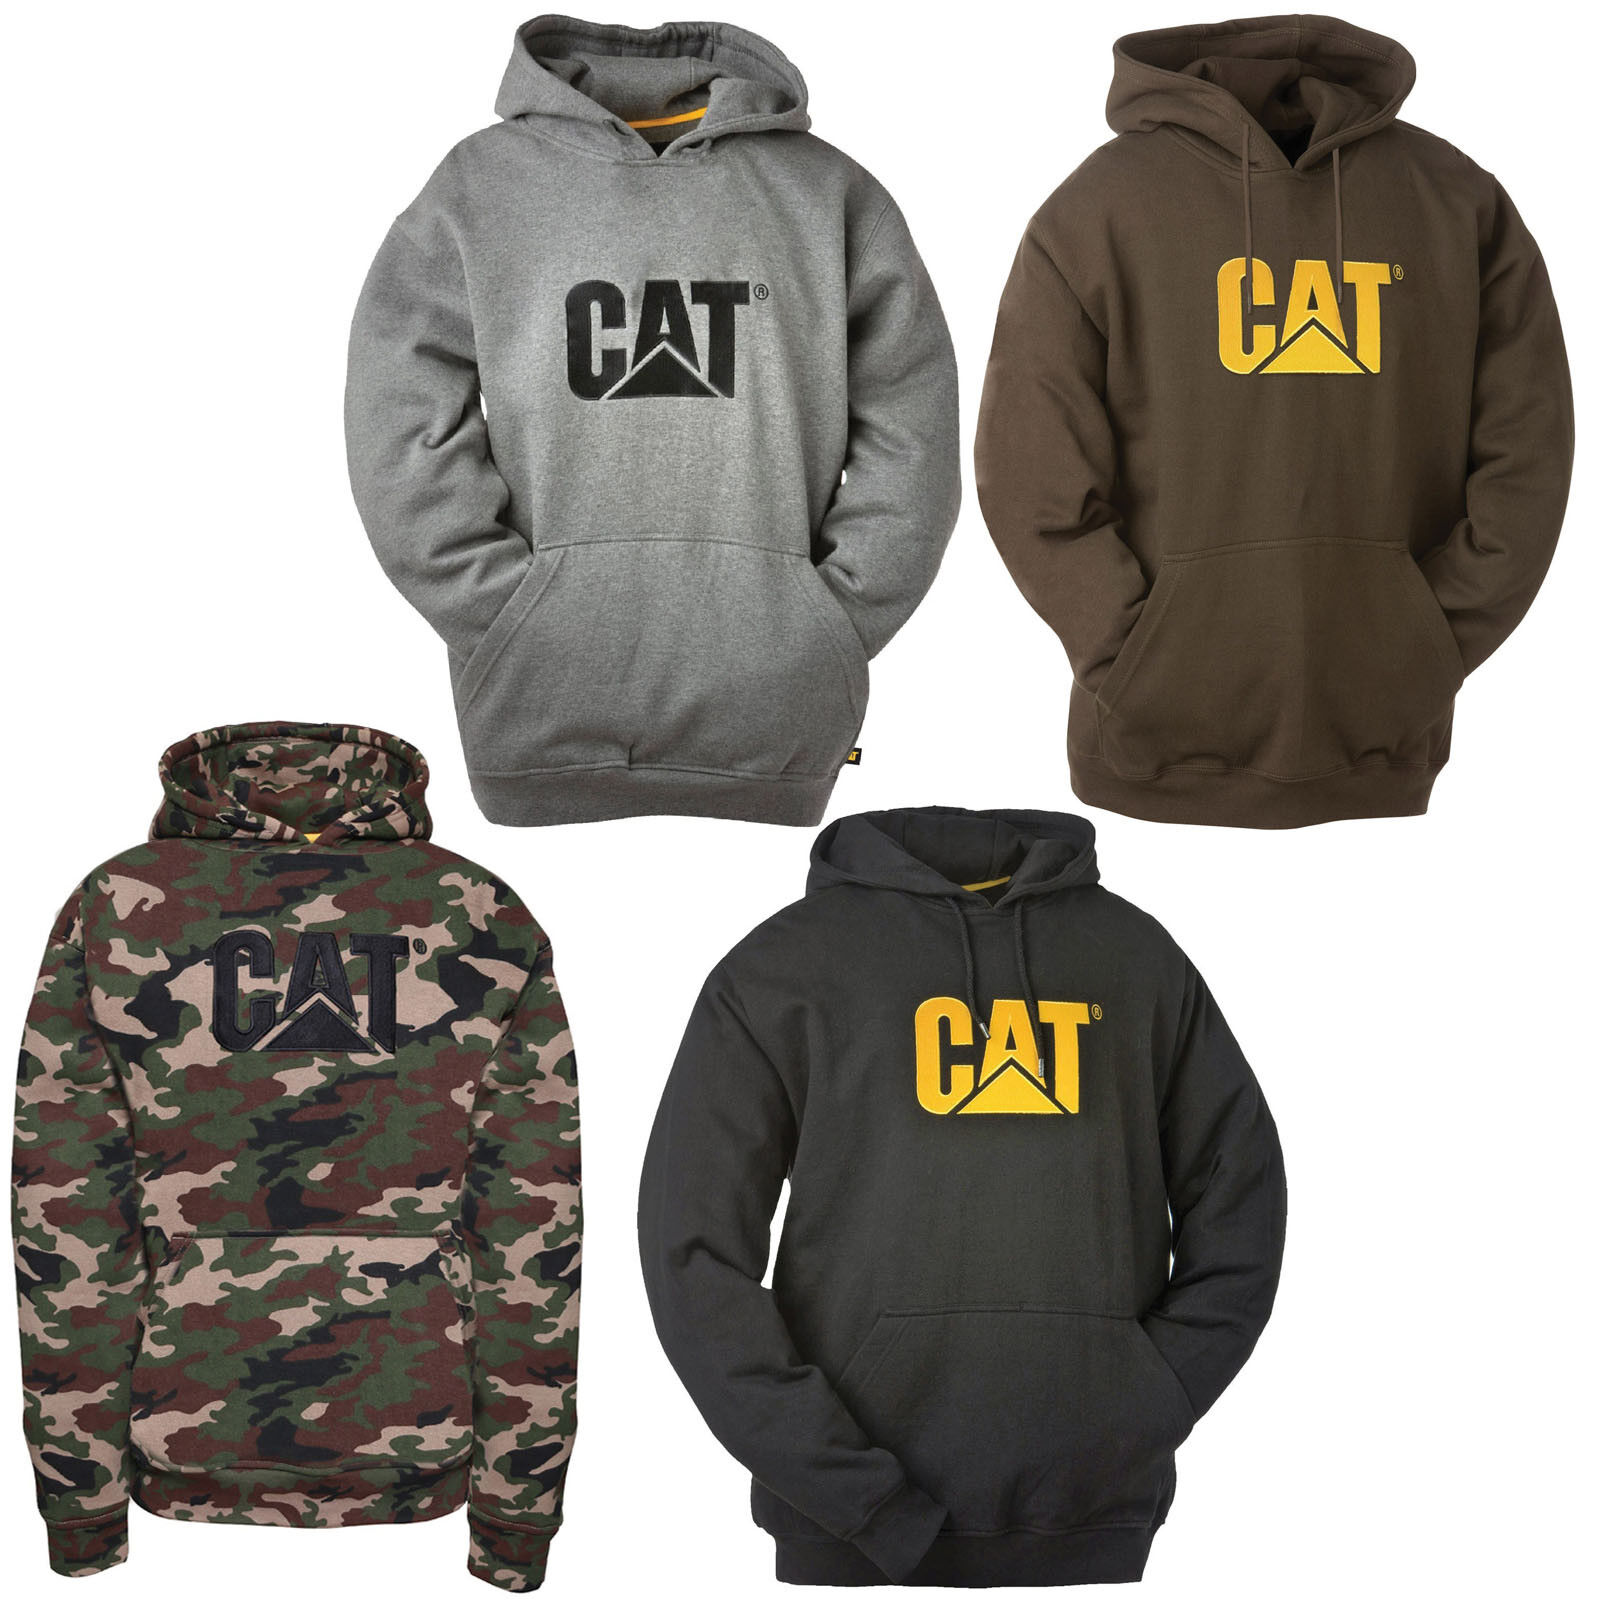 CAT Caterpillar Trademark Sweatshirt Hoodie Durable Work Jumper  Herren Sweater